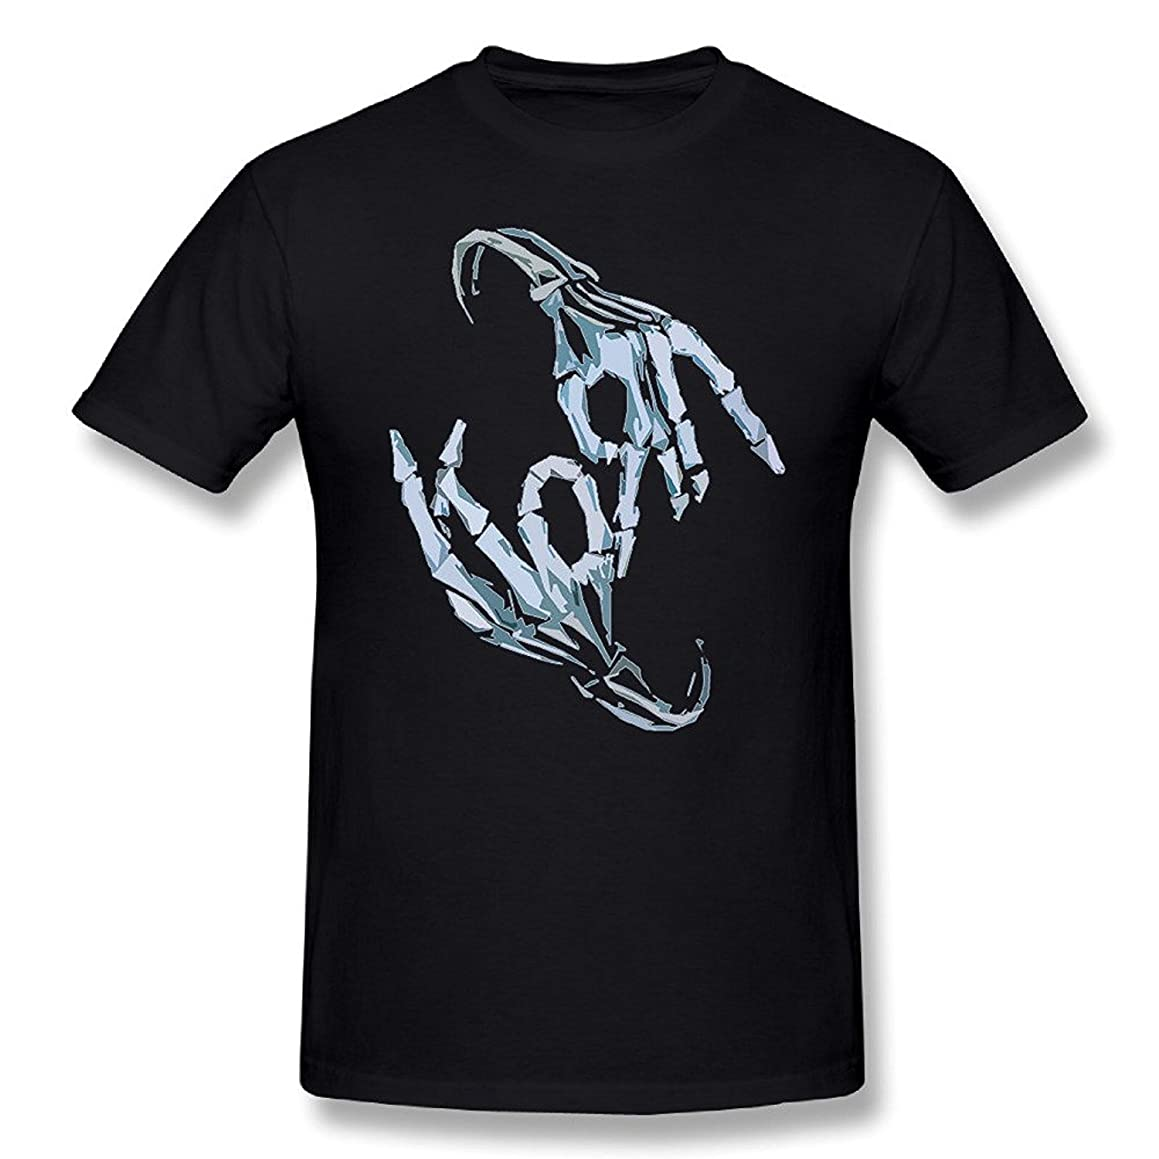 Sun-Tshirt Korn Band Skeleton Sign Bone Logo T-Shirt